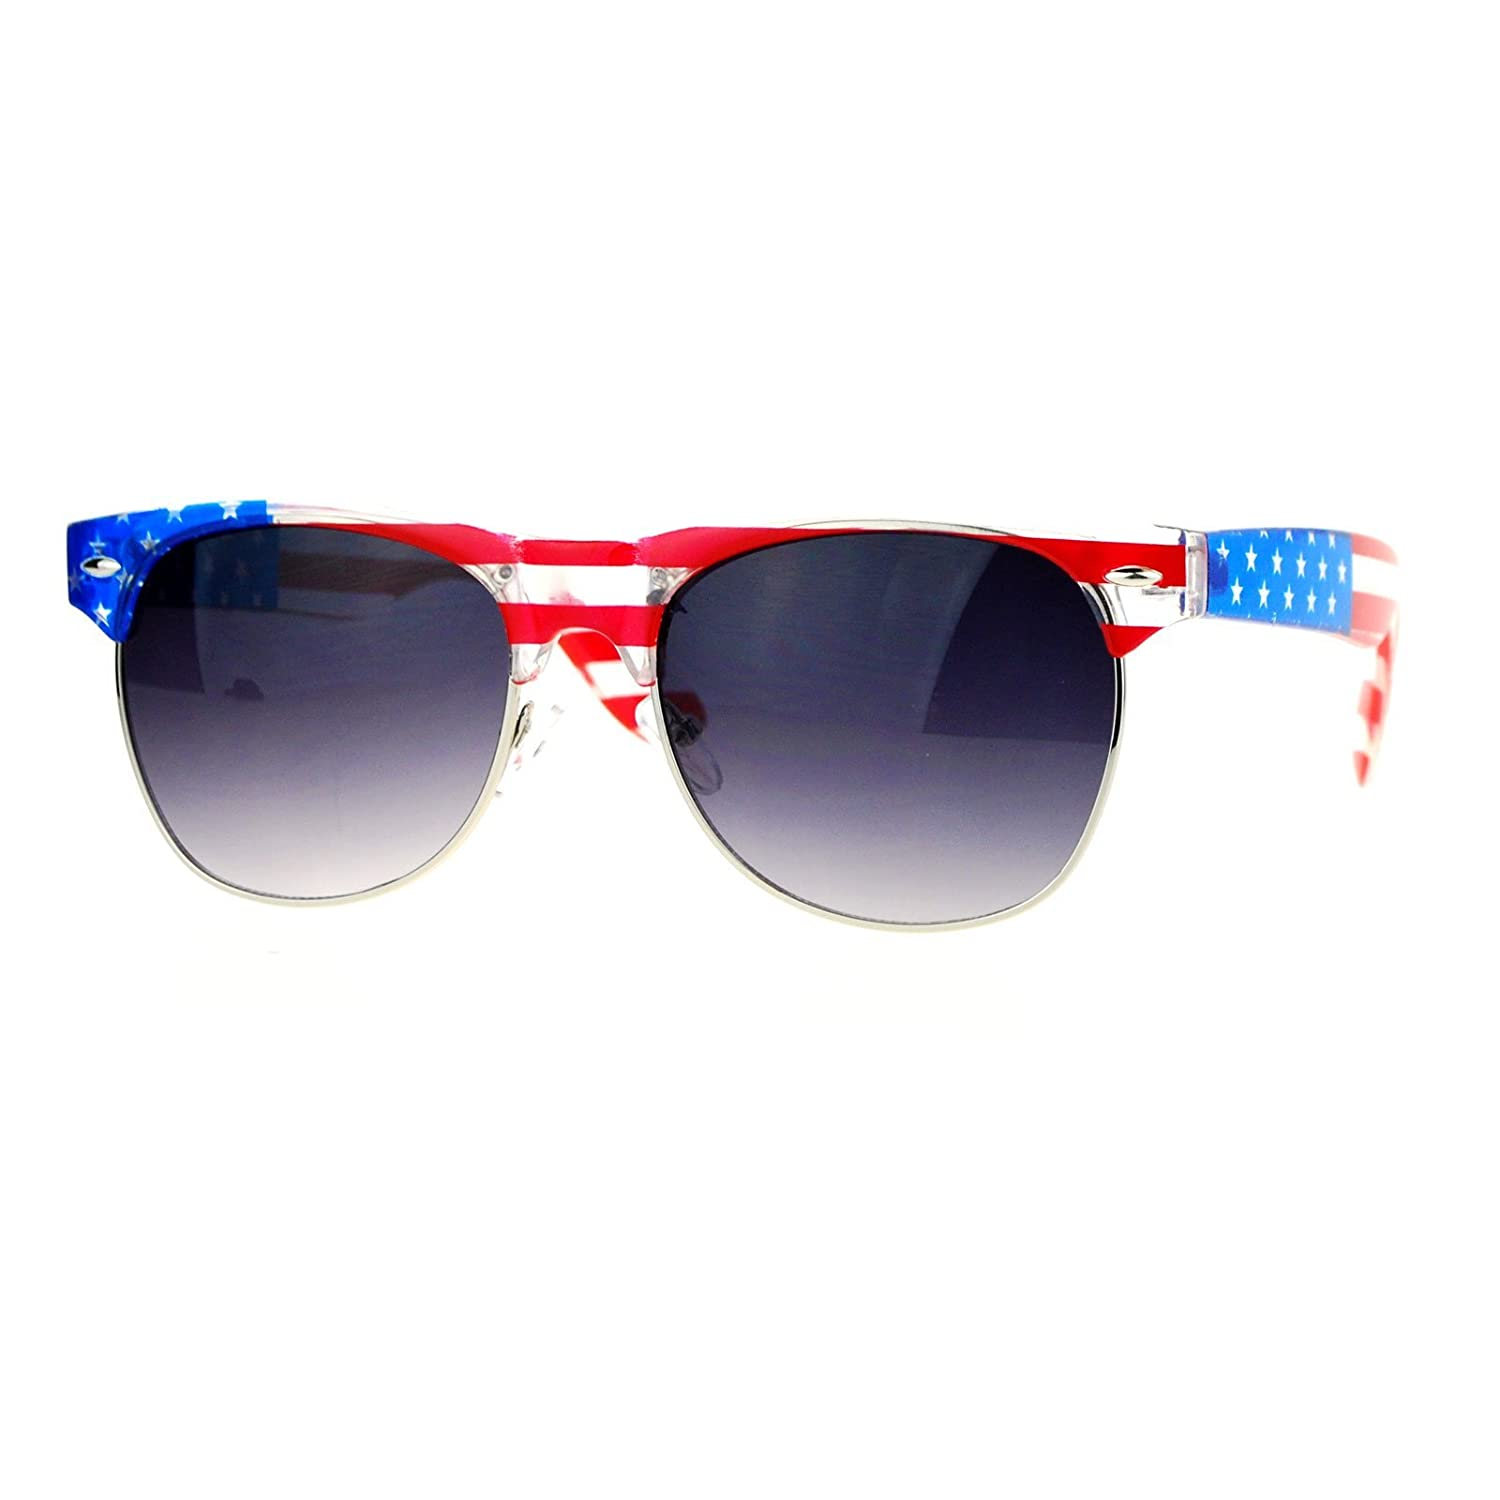 e8723ff94fcd Amazon.com  SA106 Mirror Lens Patriotic USA Flag Print Half Rim Sunglasses  Clear Blue  Clothing